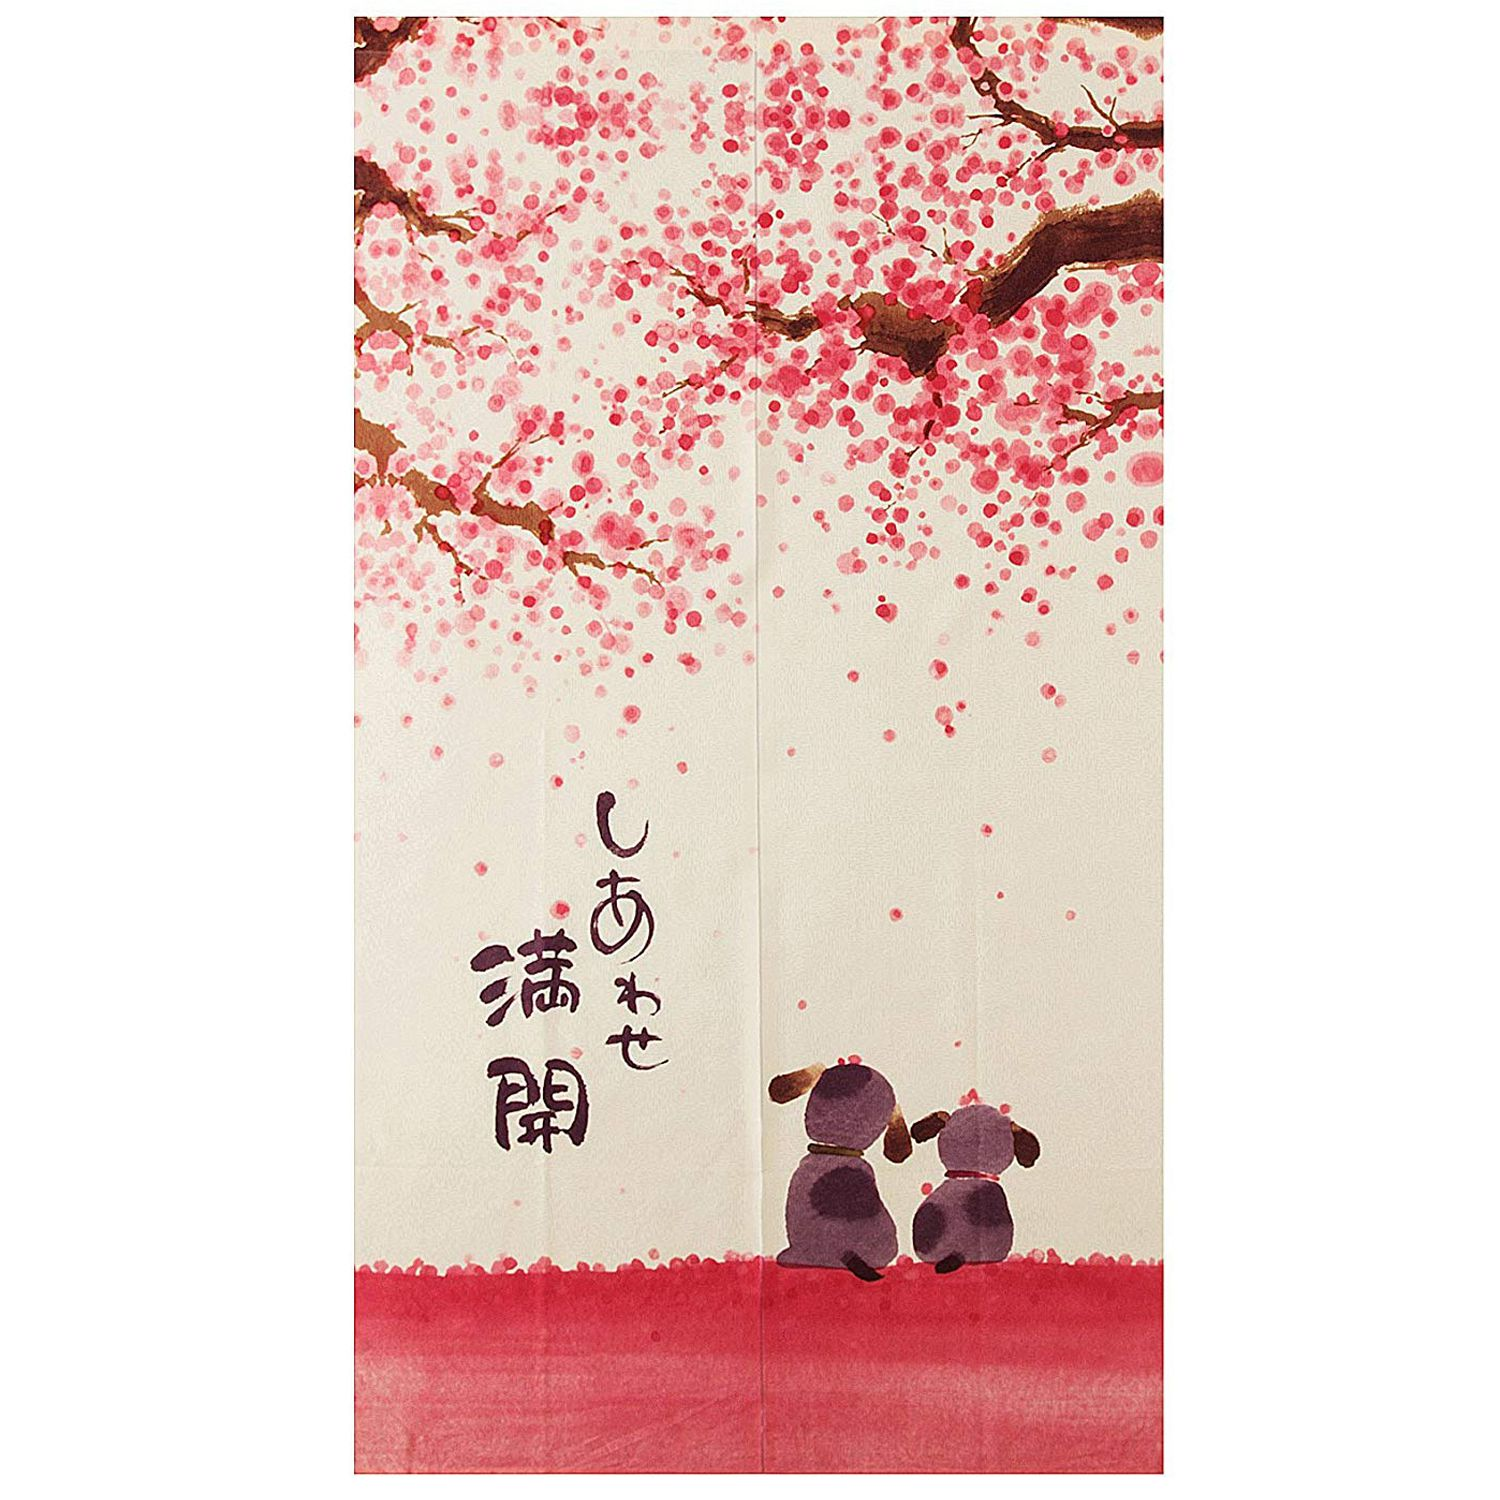 Hot Japanese Style Doorway Curtain 85X150Cm Happy Dogs Cherry Blossom